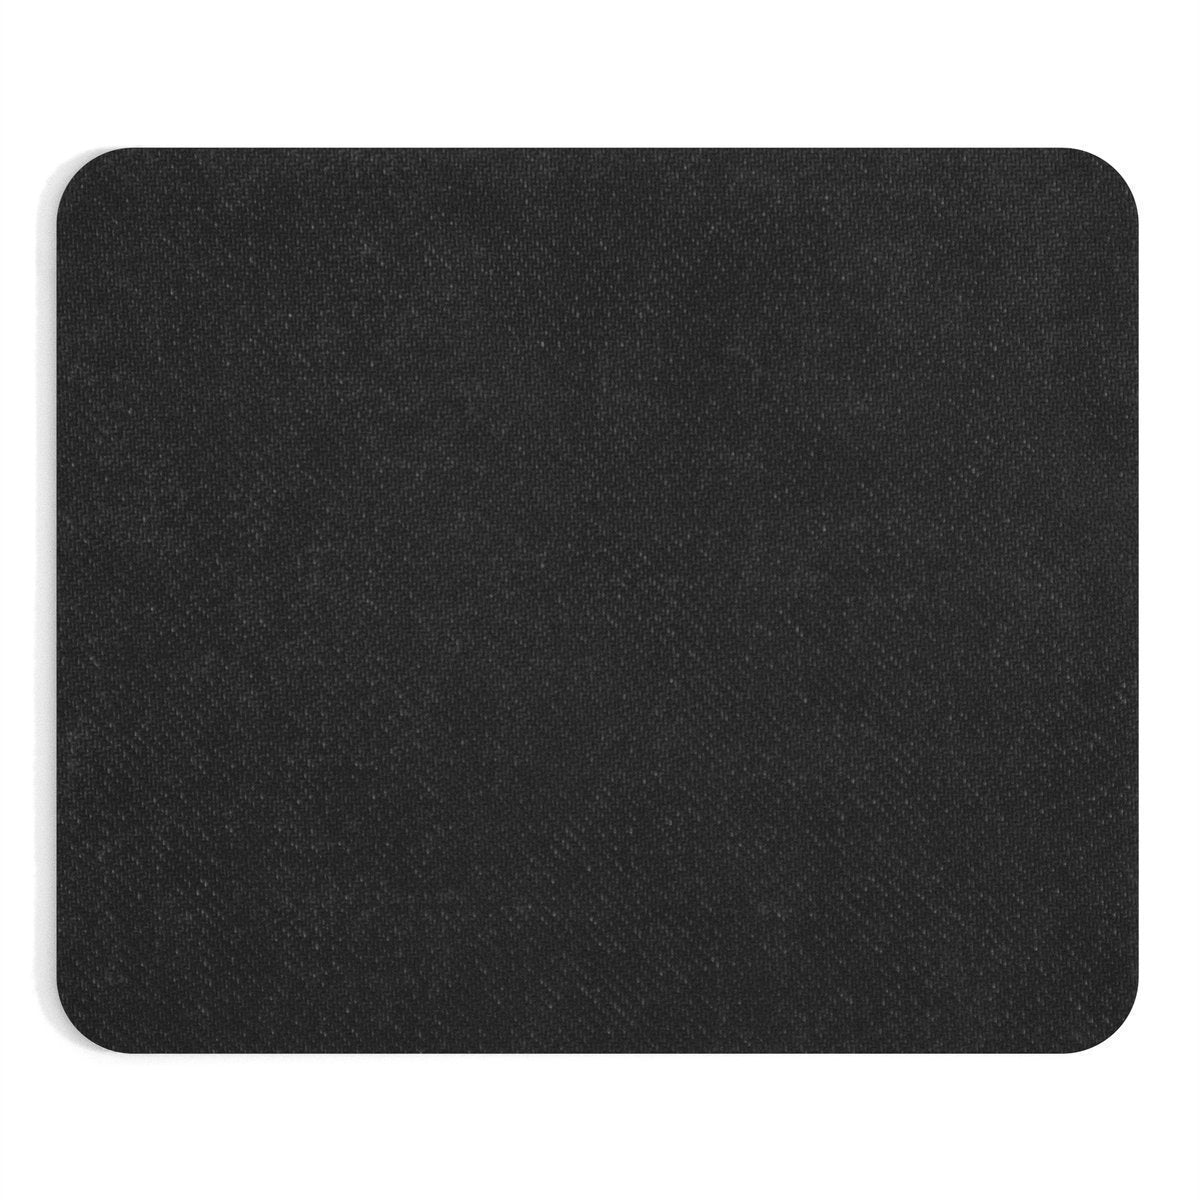 Modern rectangular Mouse pad for kids-Home Decor-Printify-Rectangle-Très Elite